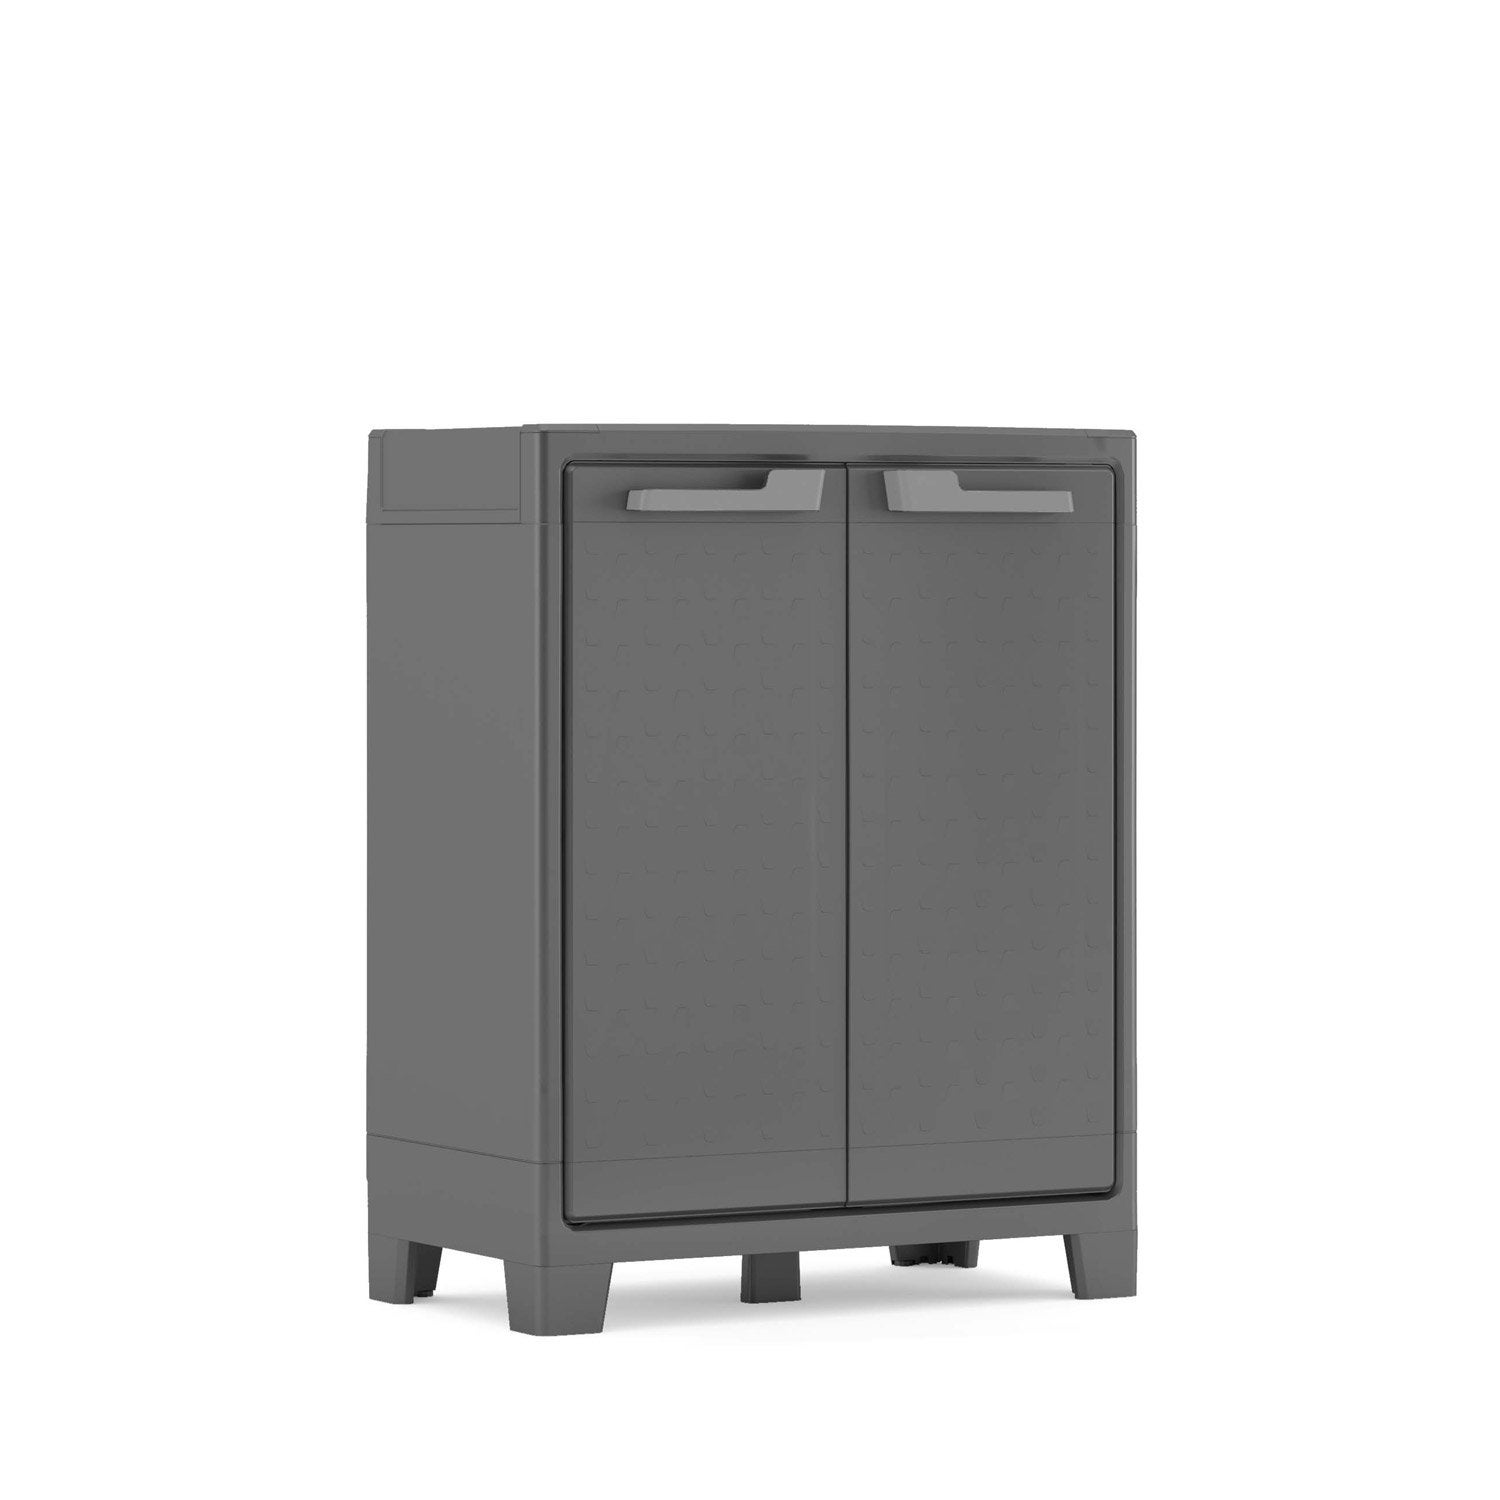 armoire de jardin r sine titan anthracite x x cm leroy merlin. Black Bedroom Furniture Sets. Home Design Ideas